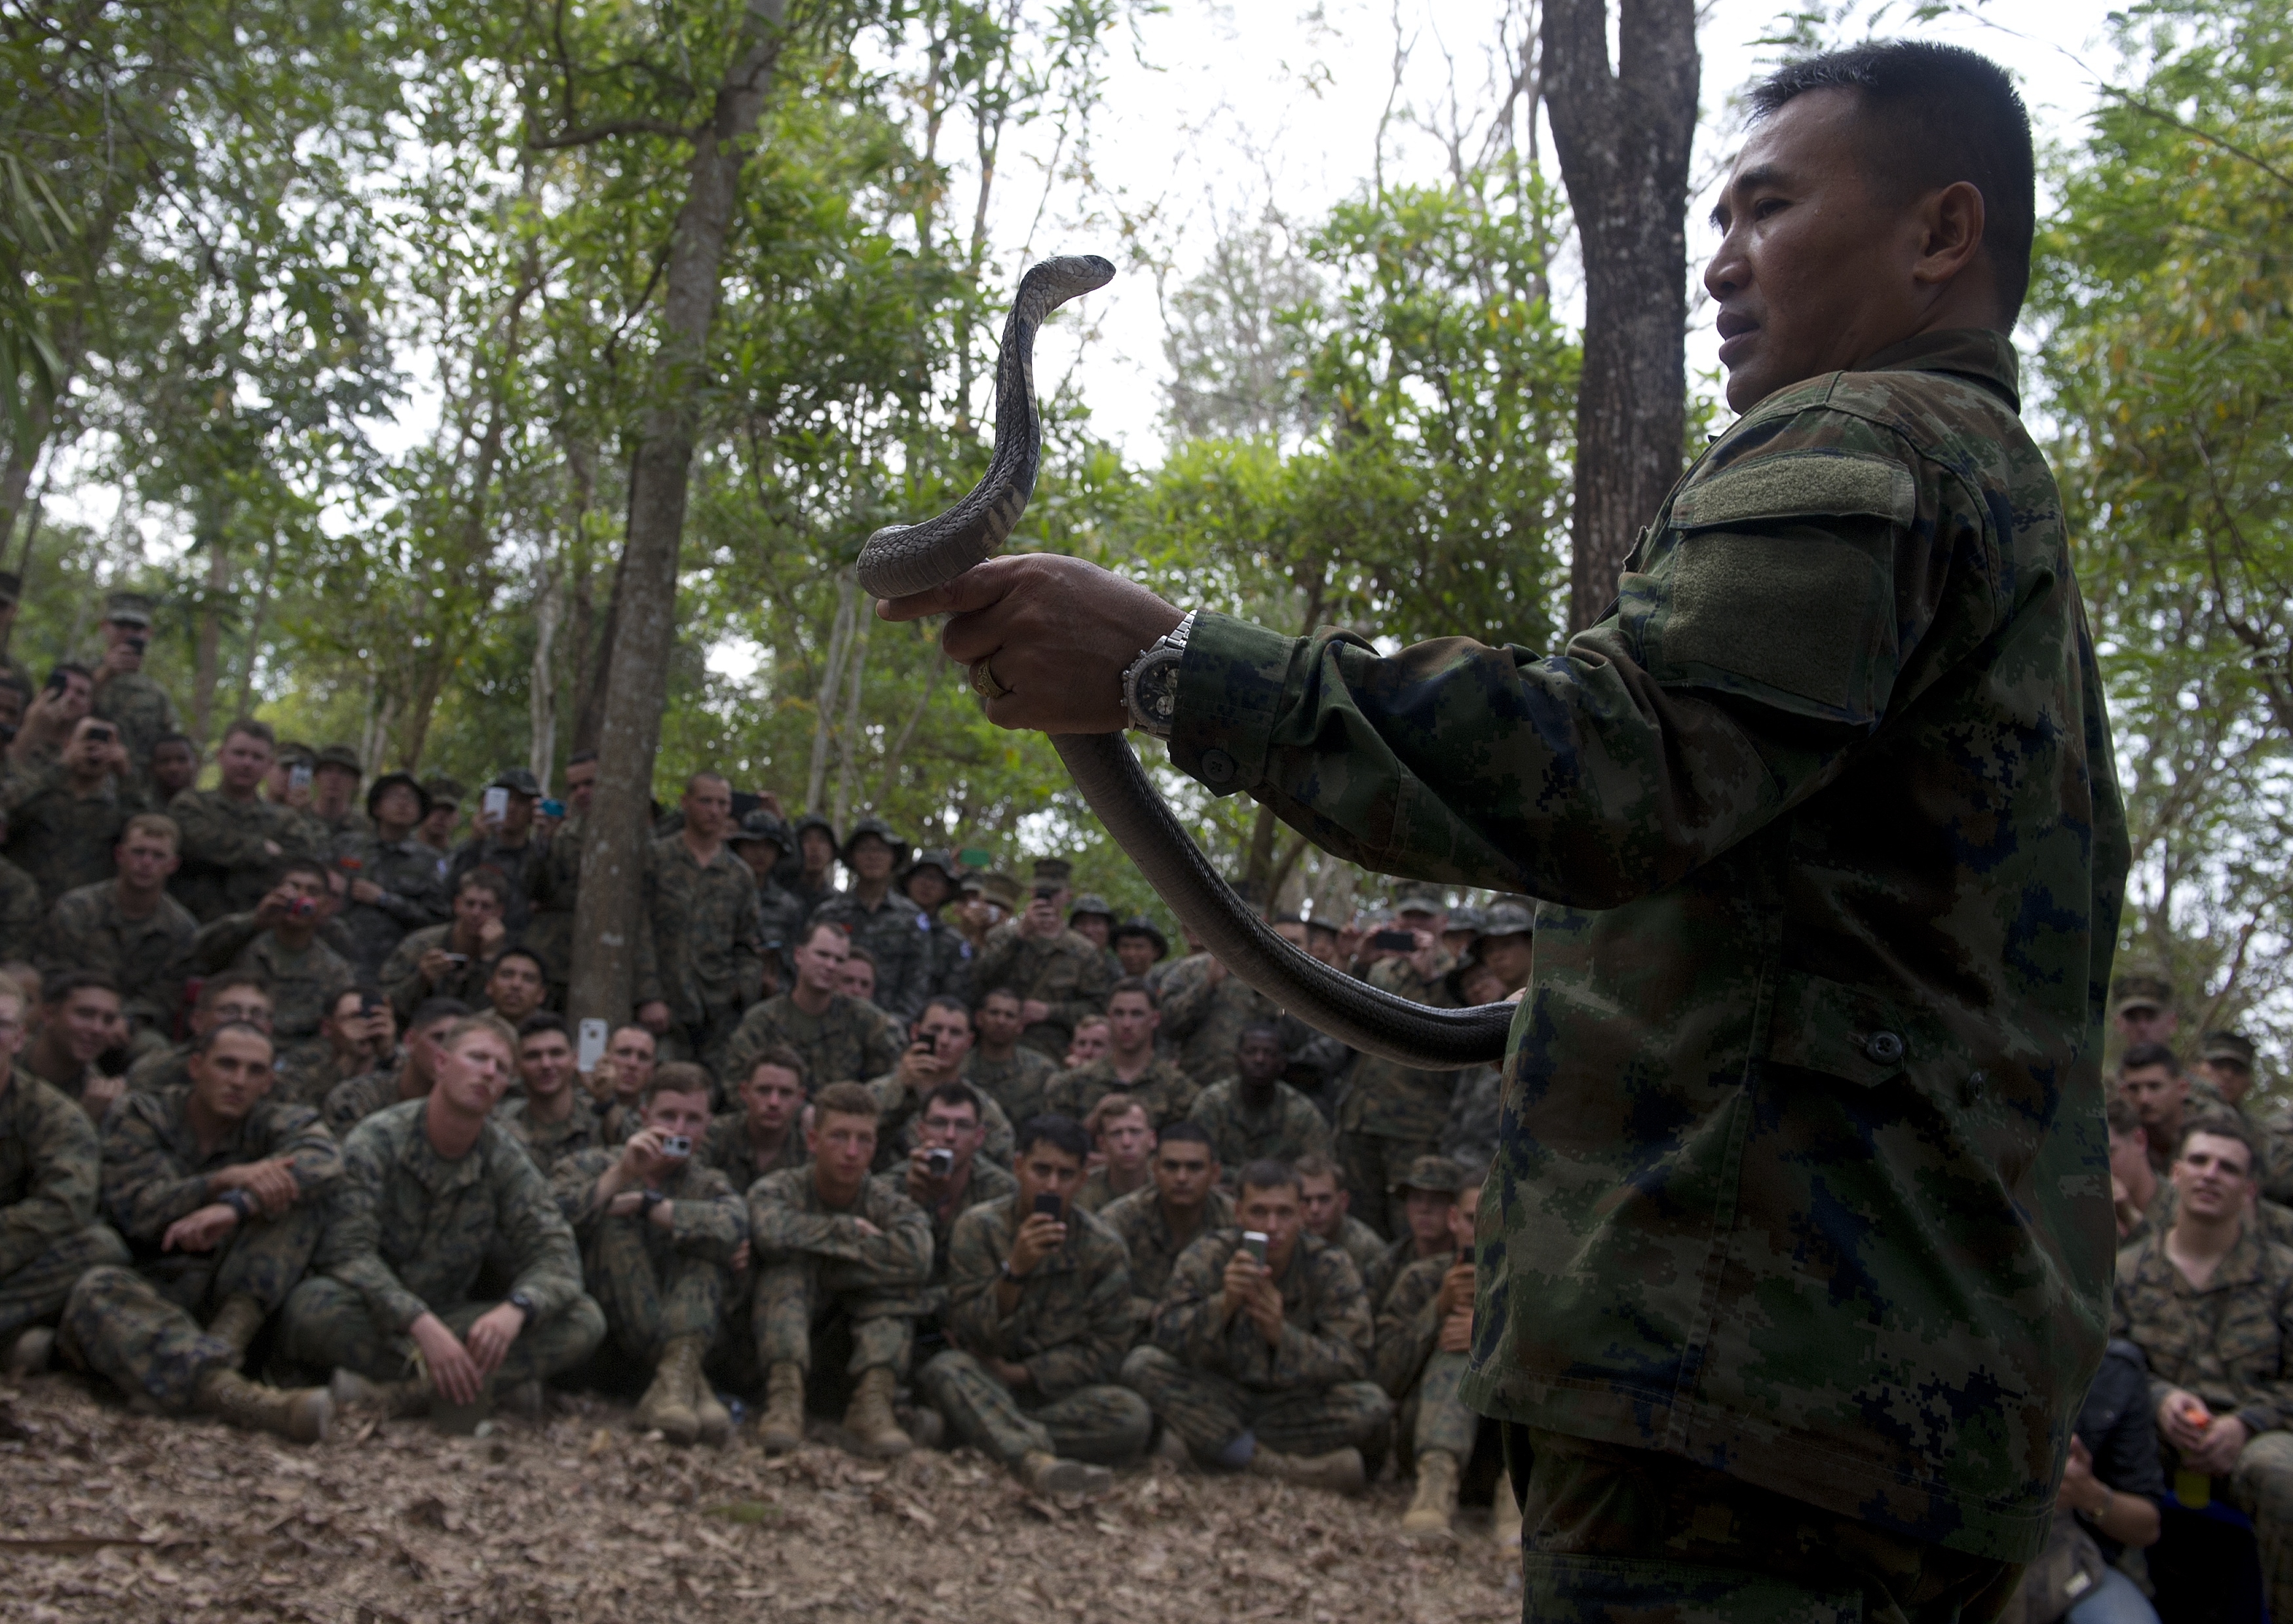 A Thai Marine shows how to catch a cobra as U.S. Marines look on during a jungle-survival program at a navy base in Chanthaburi province, Thailand, on Feb. 15, 2014